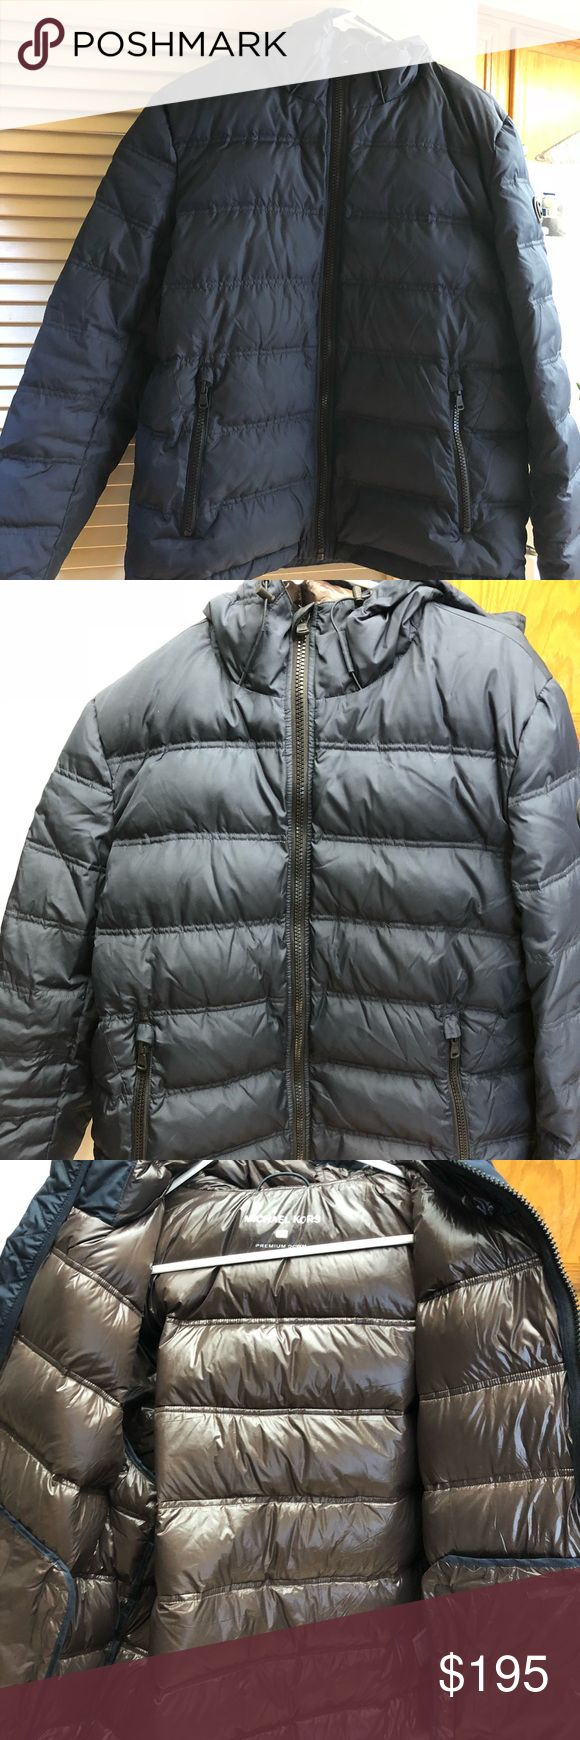 Michael Kors Men's Down Jacket Michael Kors puffer Men's jacket. Worn once on Christmas Day it's just too small on me. Feel free to ask questions thank you. Michael Kors Jackets & Coats Puffers